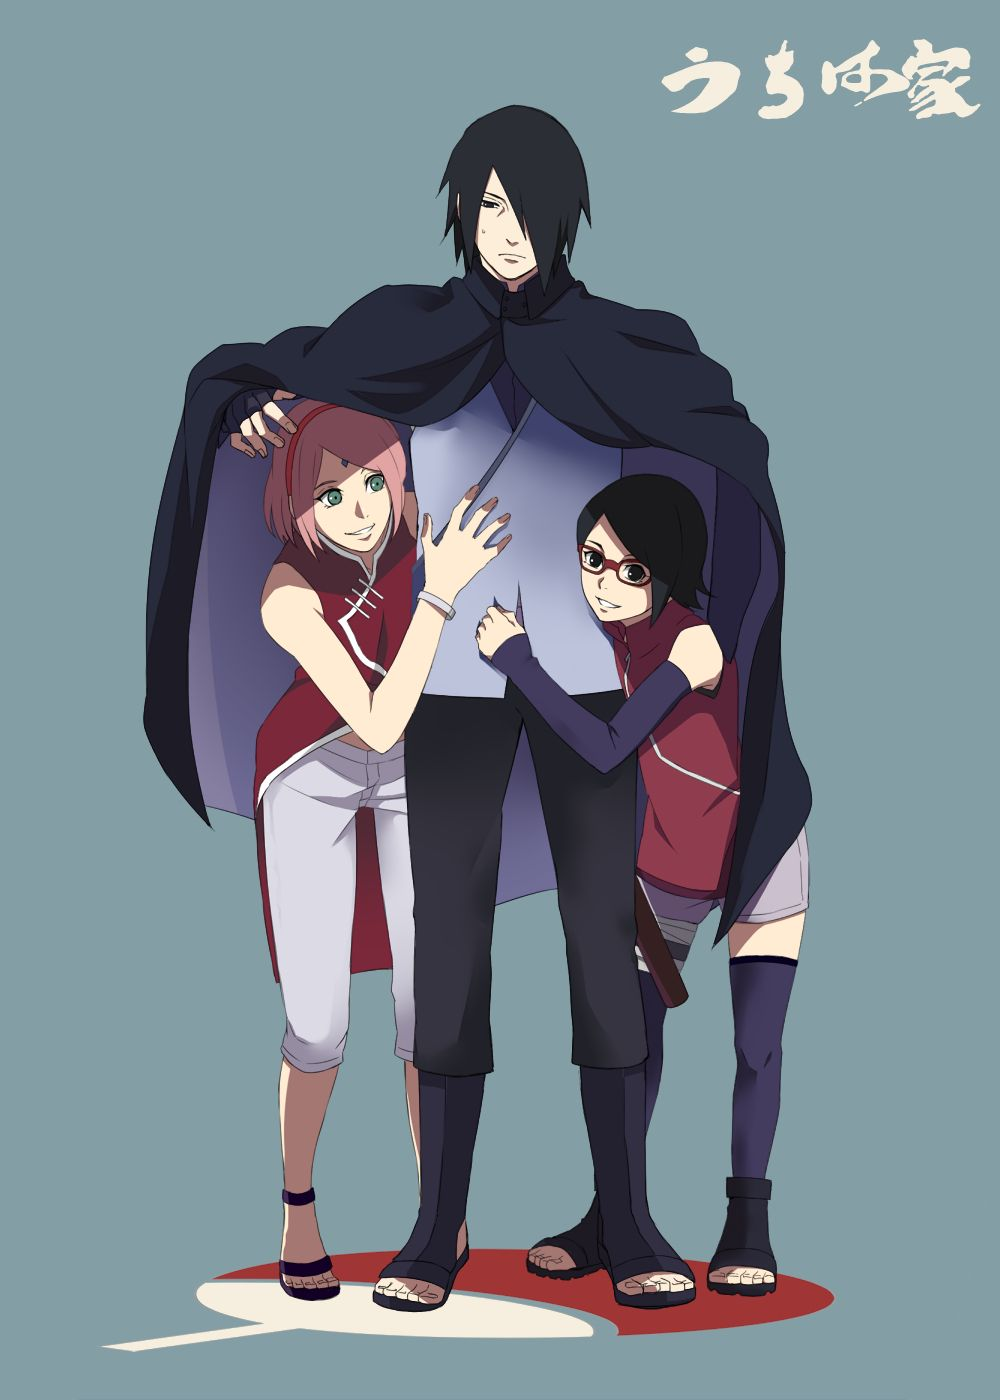 Final, sasuke uchiha and naruto uzumaki family commit